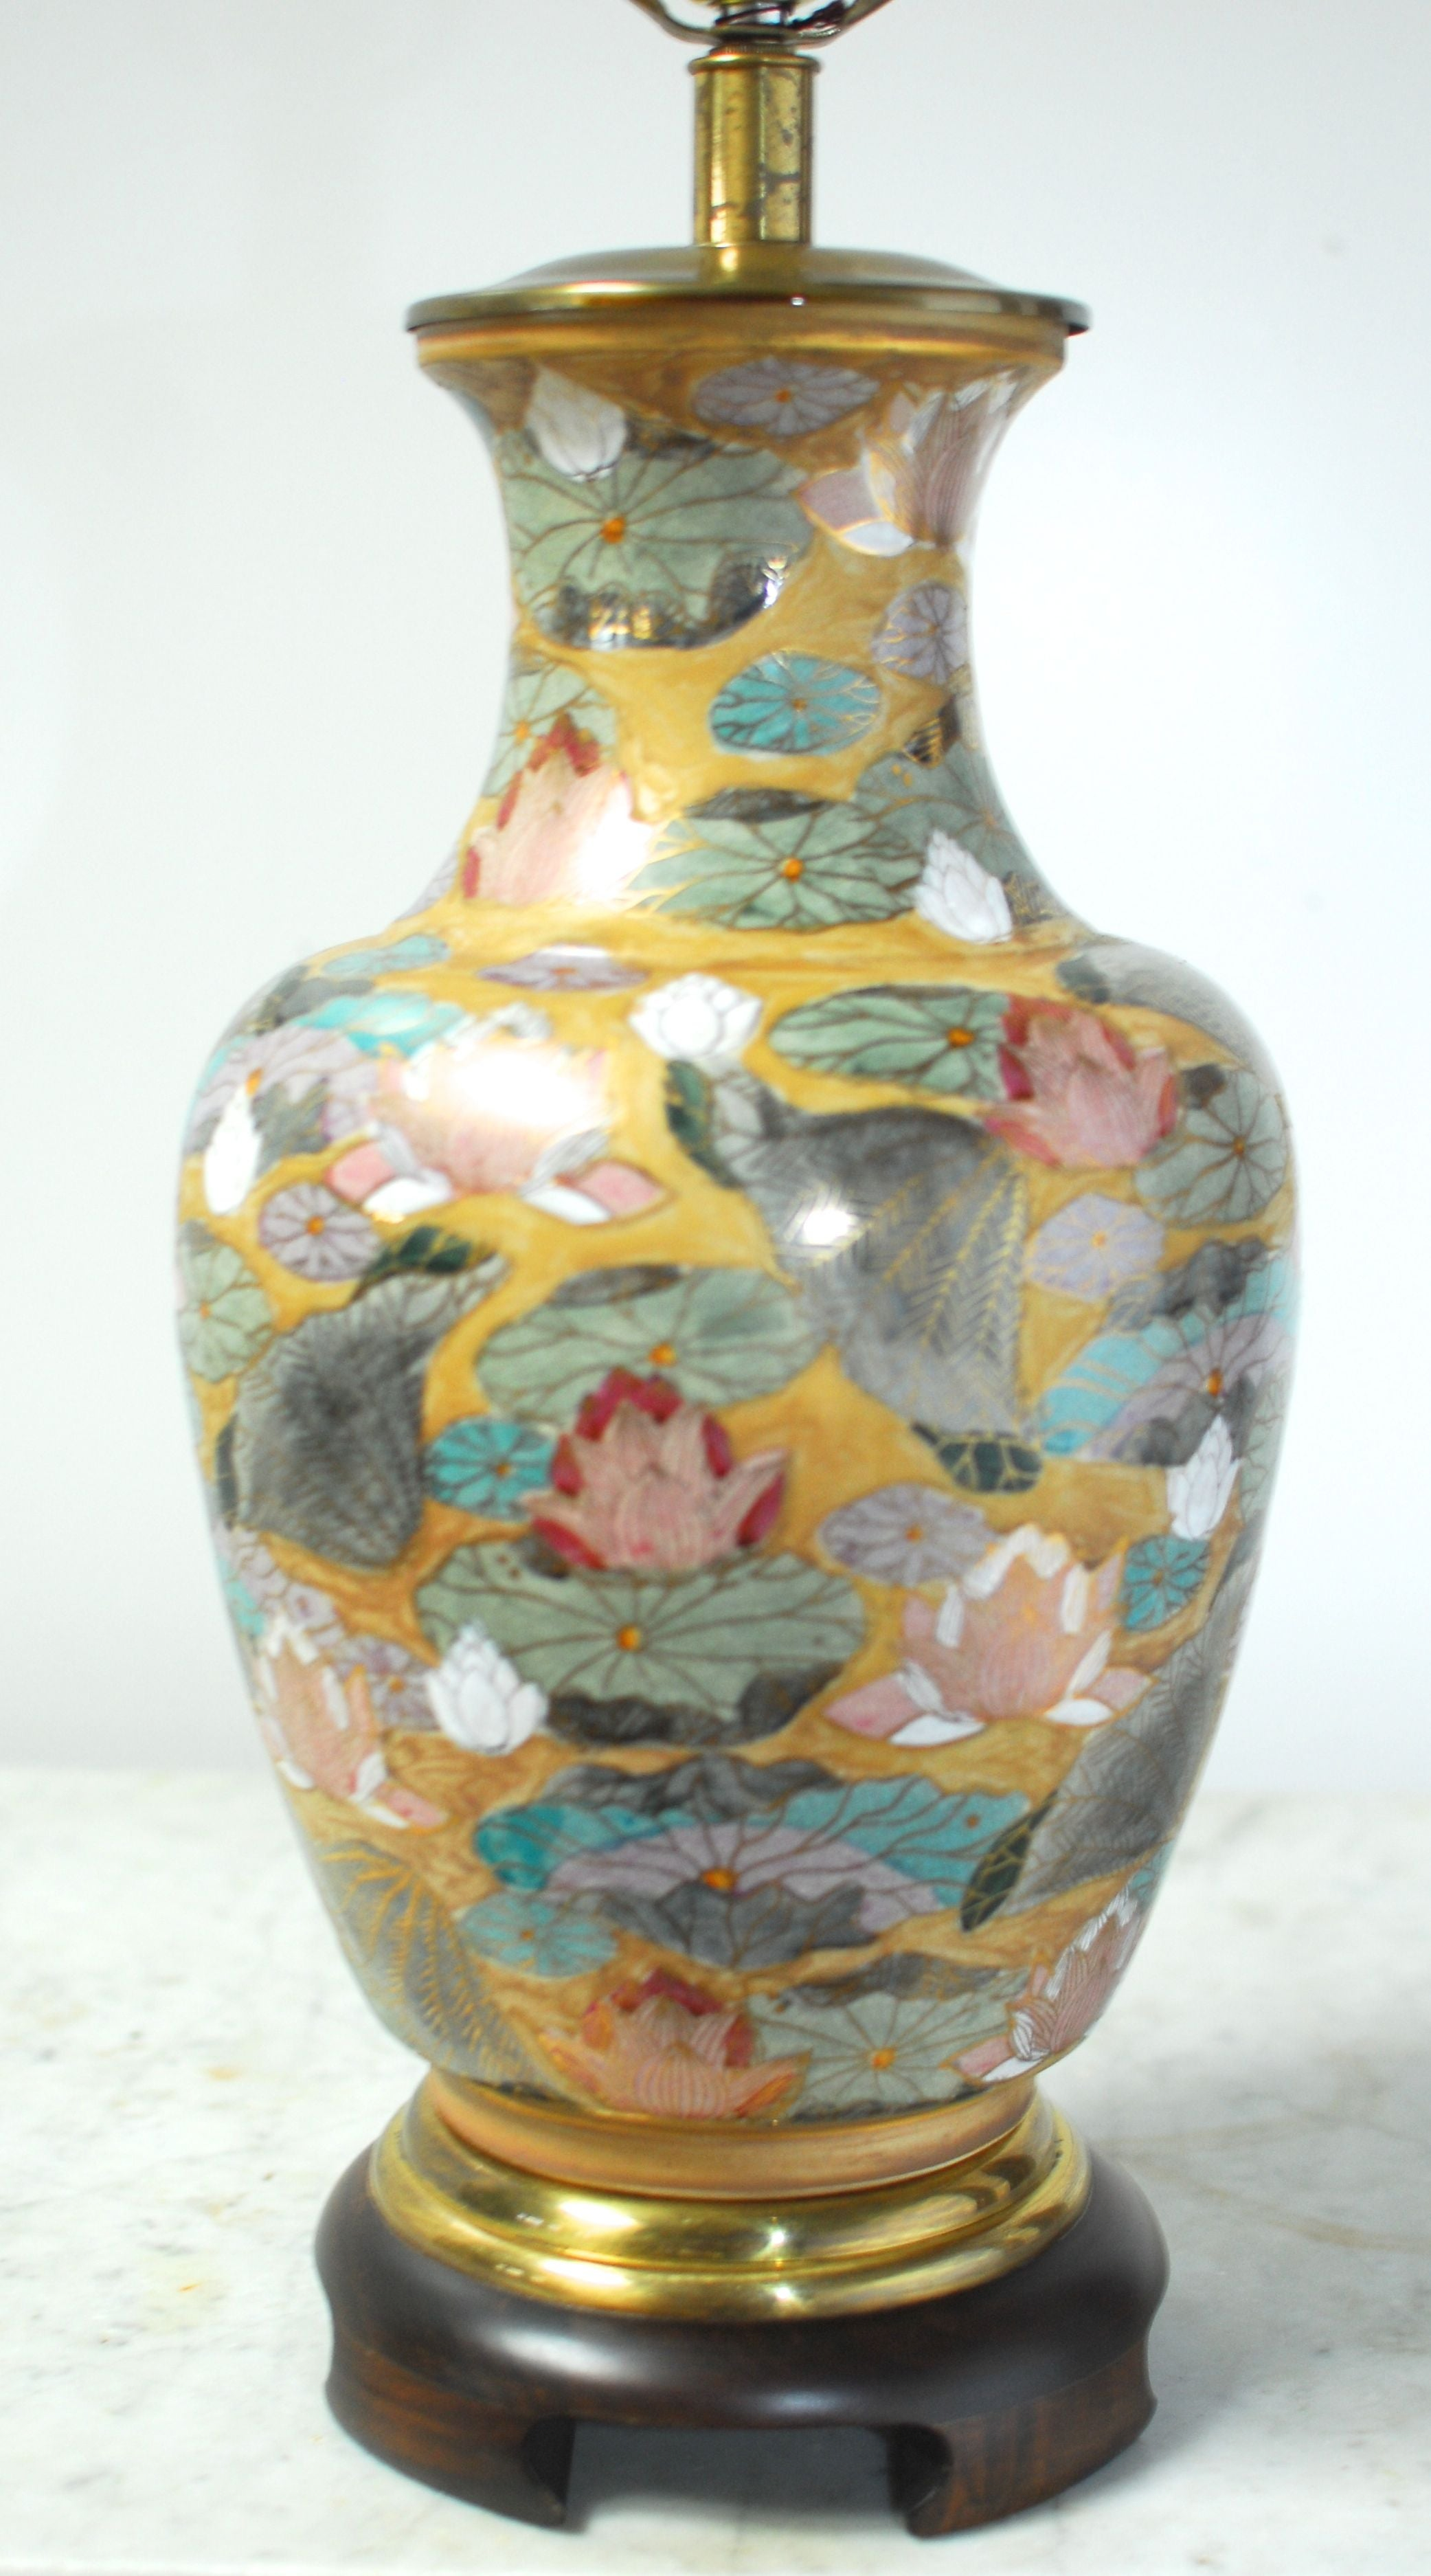 frederick jar urn bucks table ginger pottery product cooper lamps lamp floral